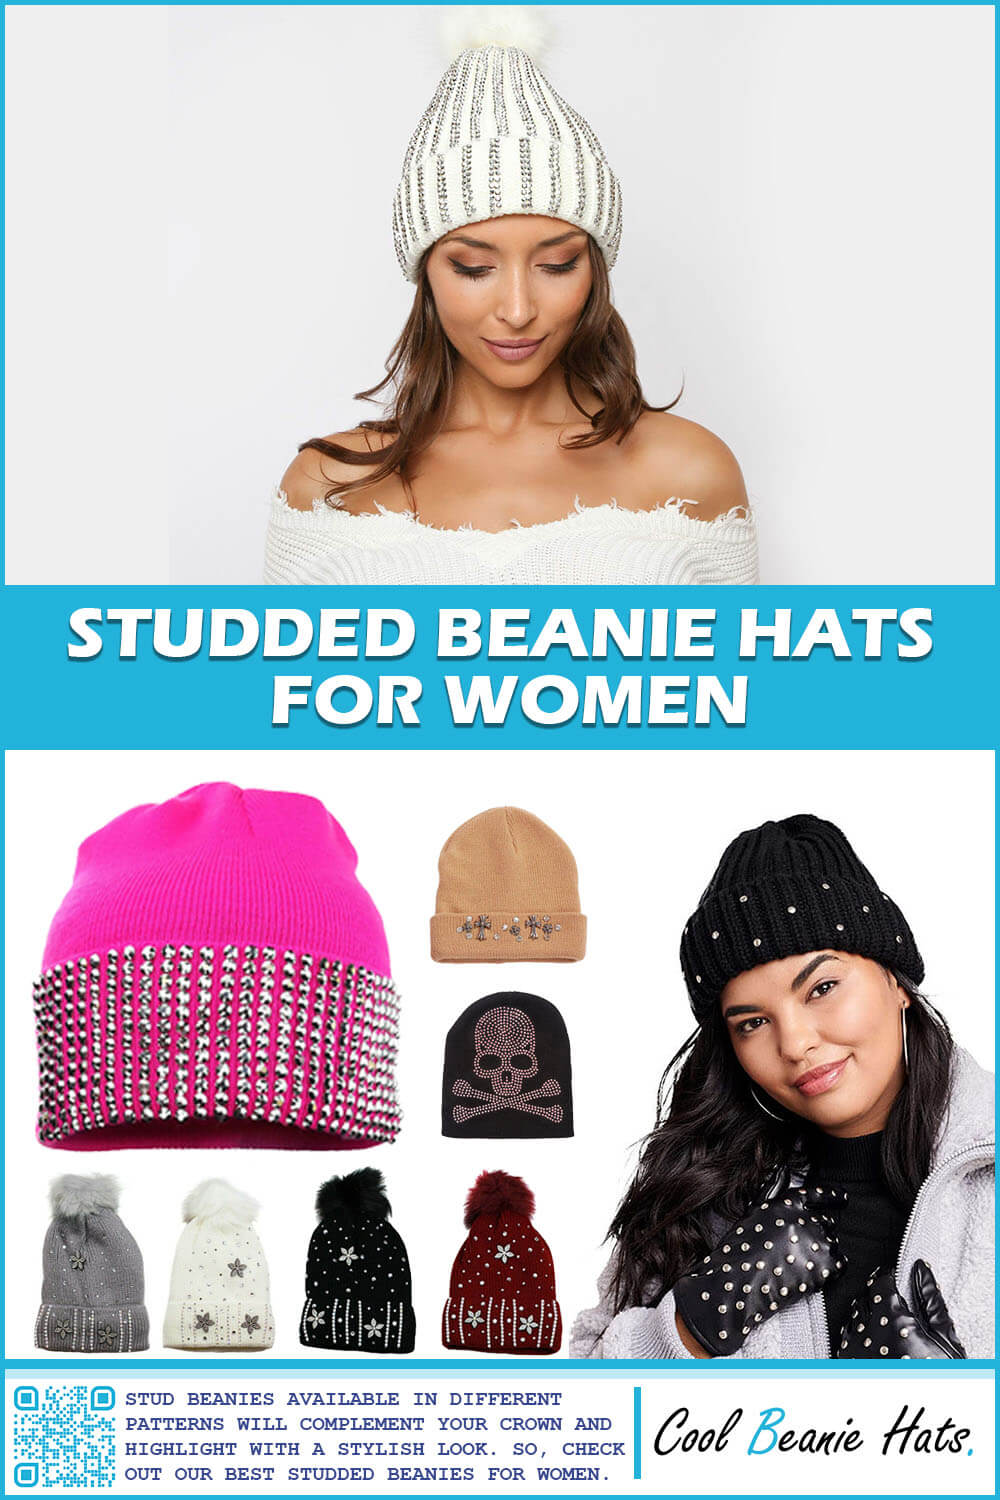 Studded Beanie Hats for Women